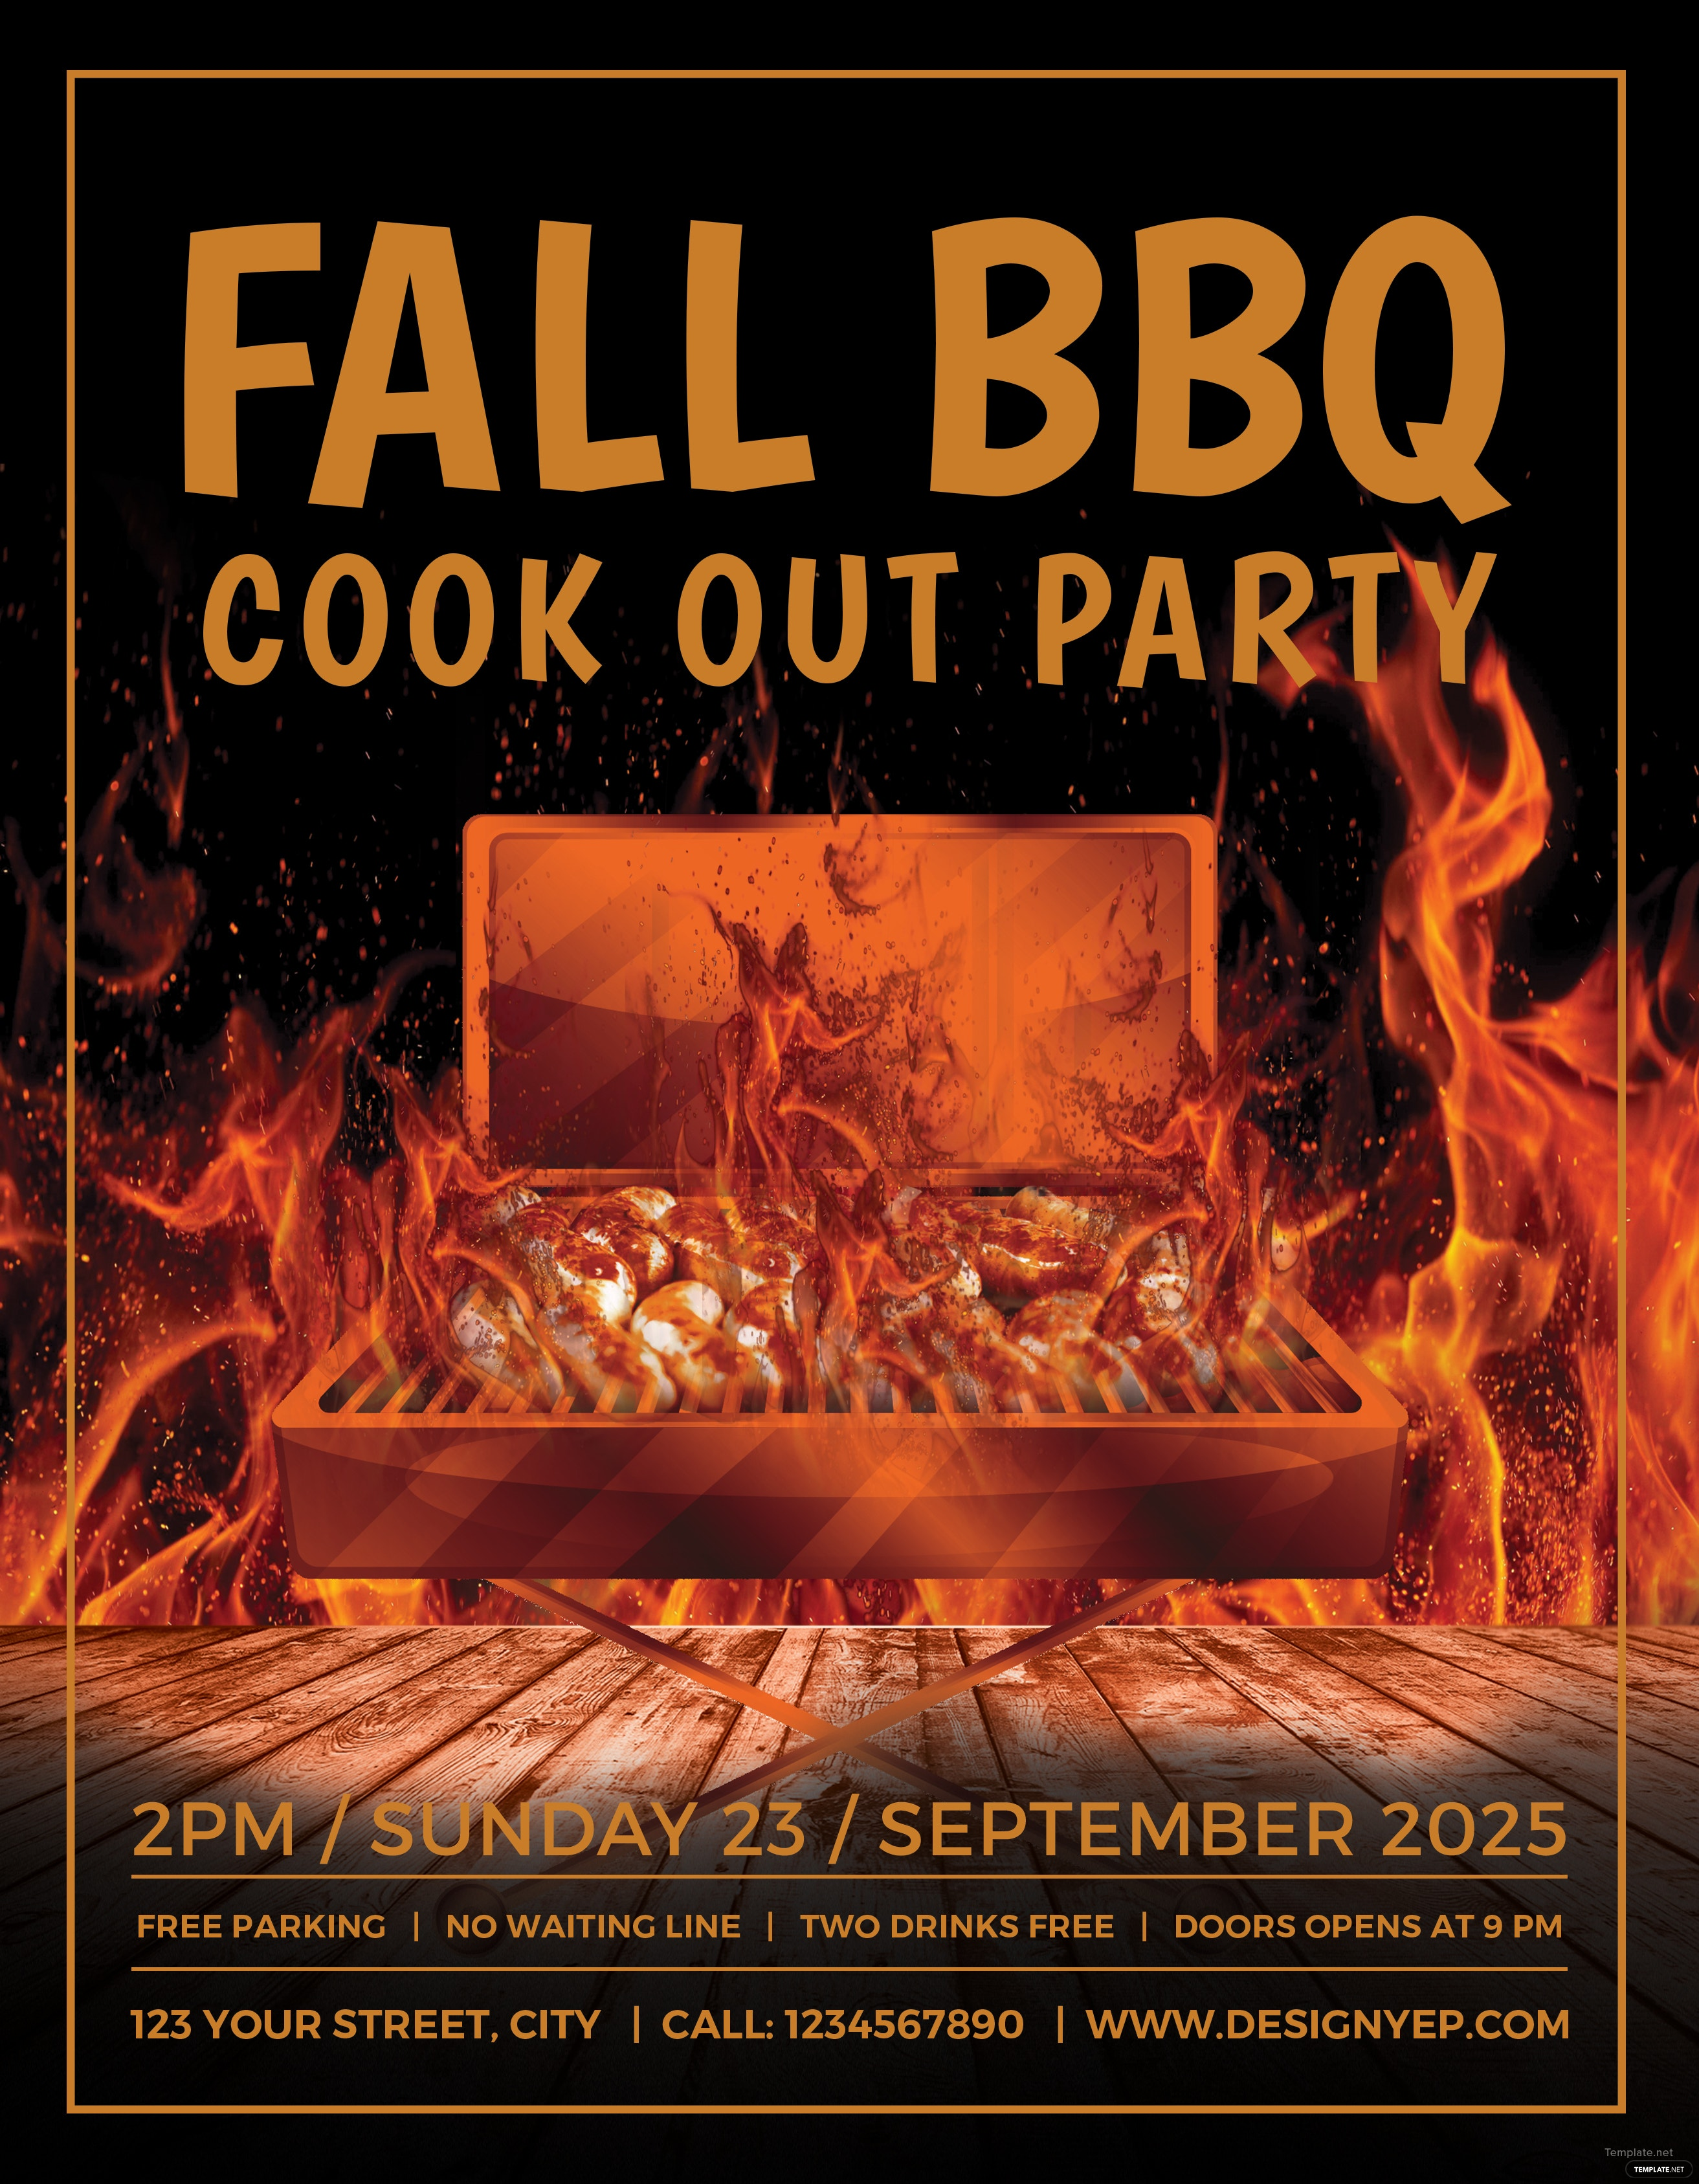 free fall bbq party flyer template in adobe photoshop  illustrator  microsoft word  publisher